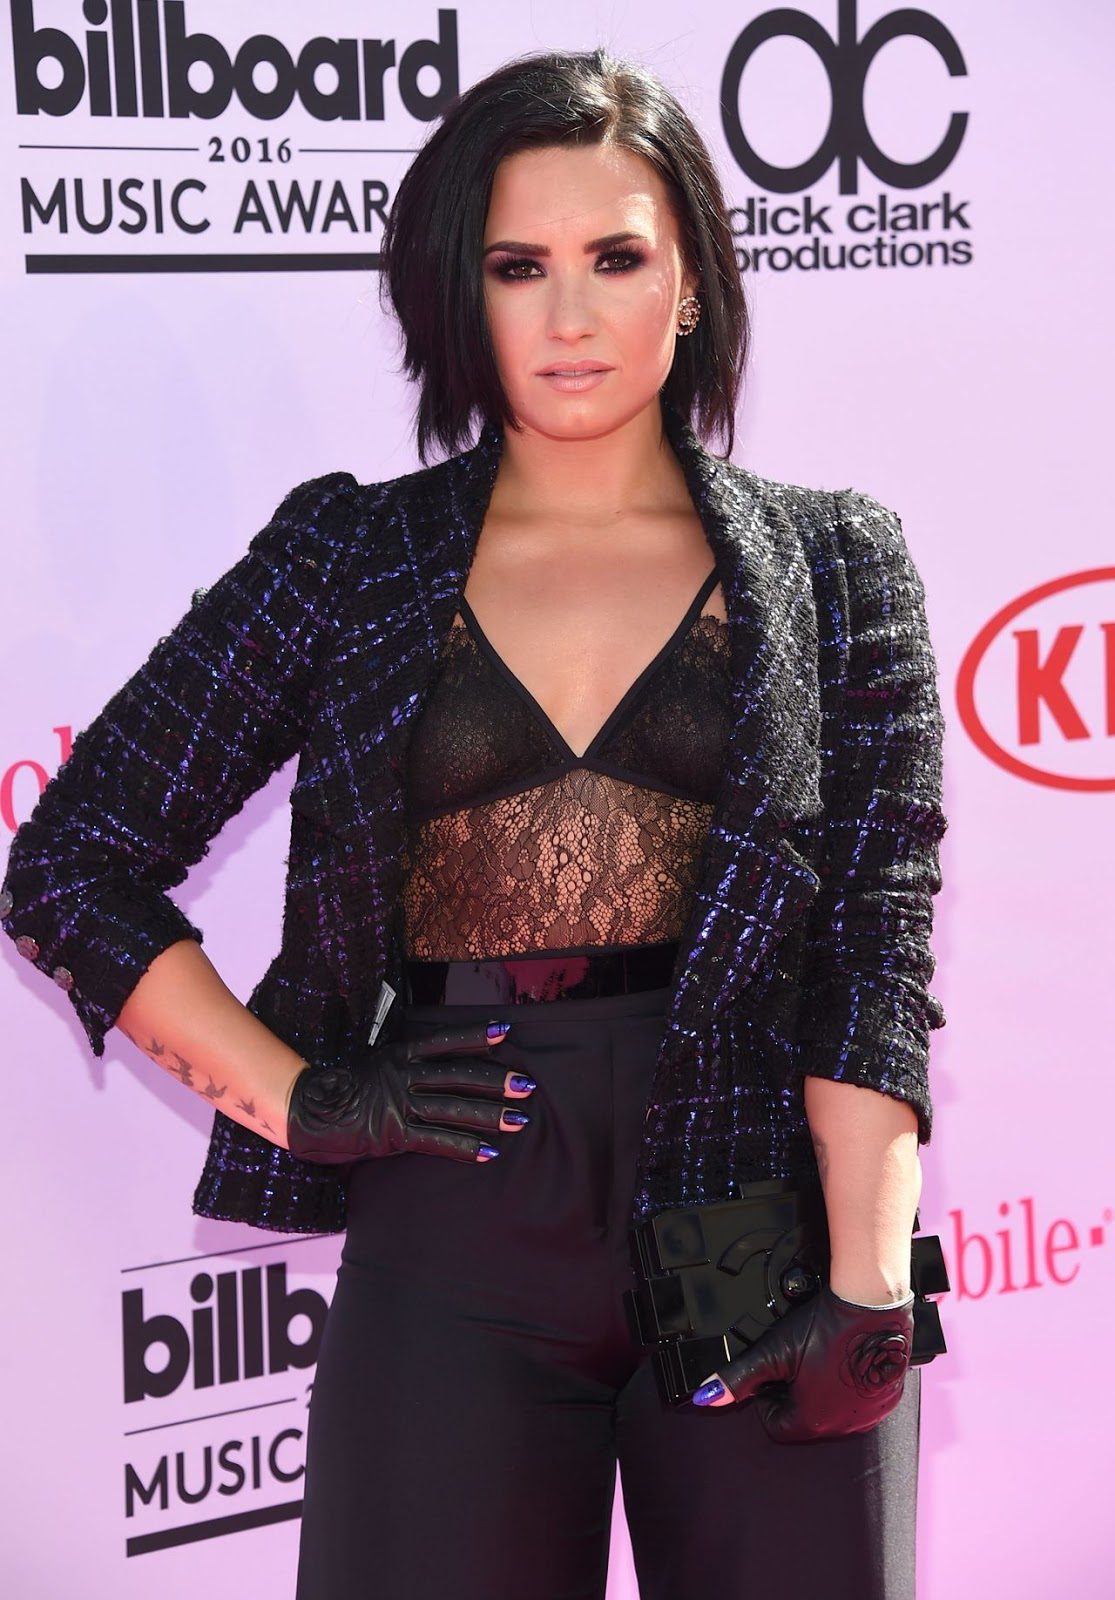 Demi Lovato rocks lacy lingerie-inspired top at Billboard Music Awards